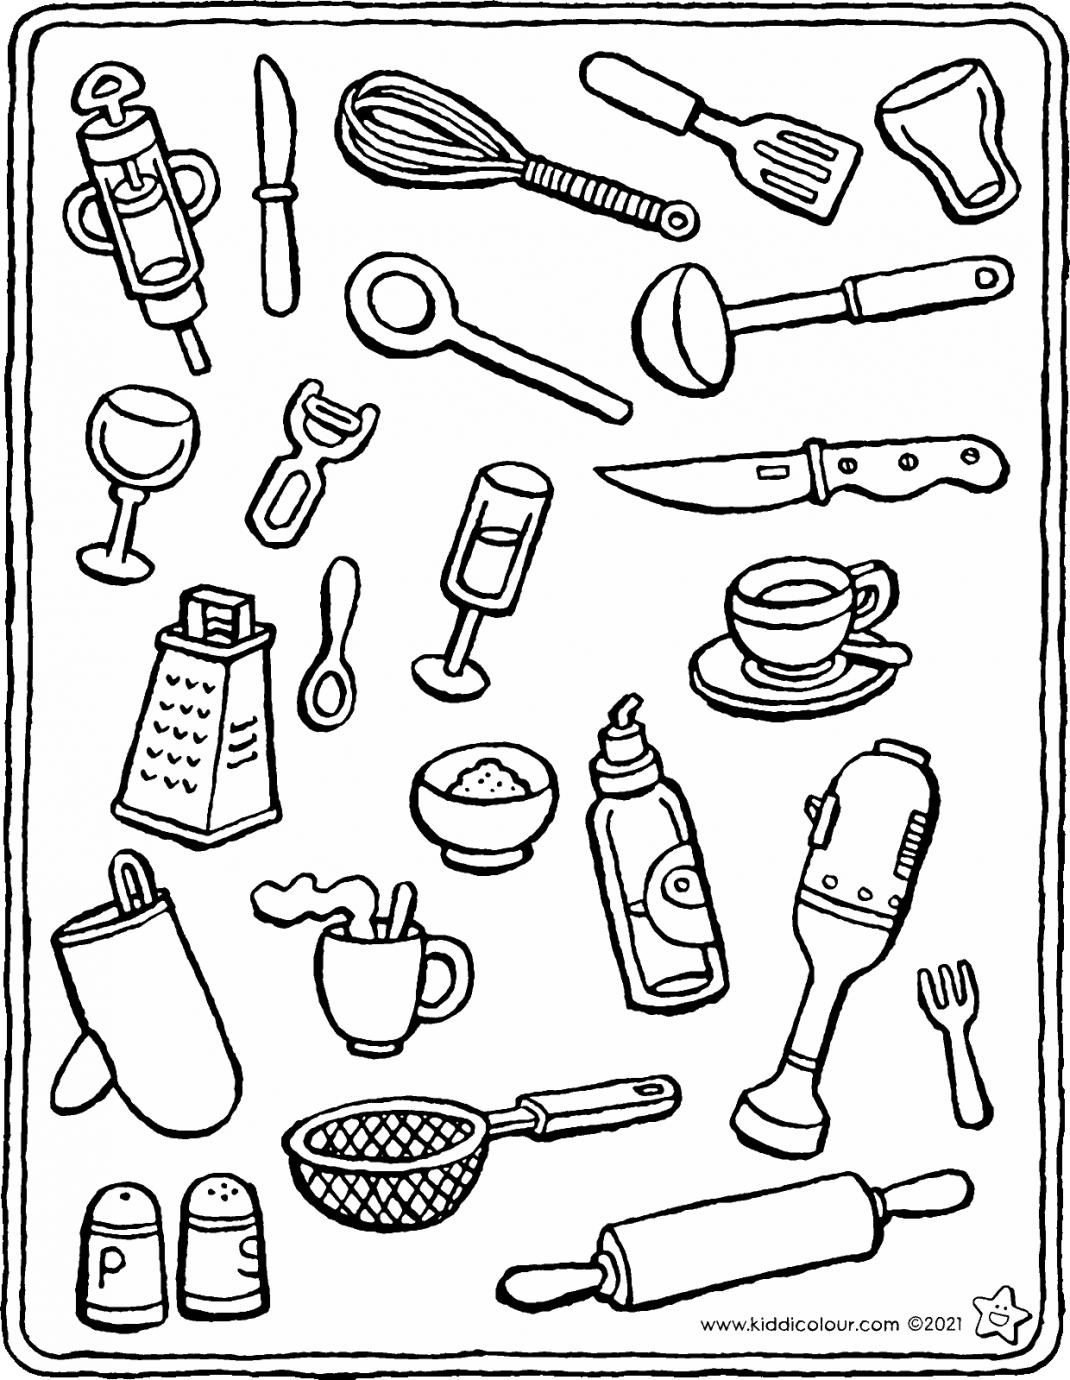 objects you'll find in the kitchen colouring page drawing picture 01V